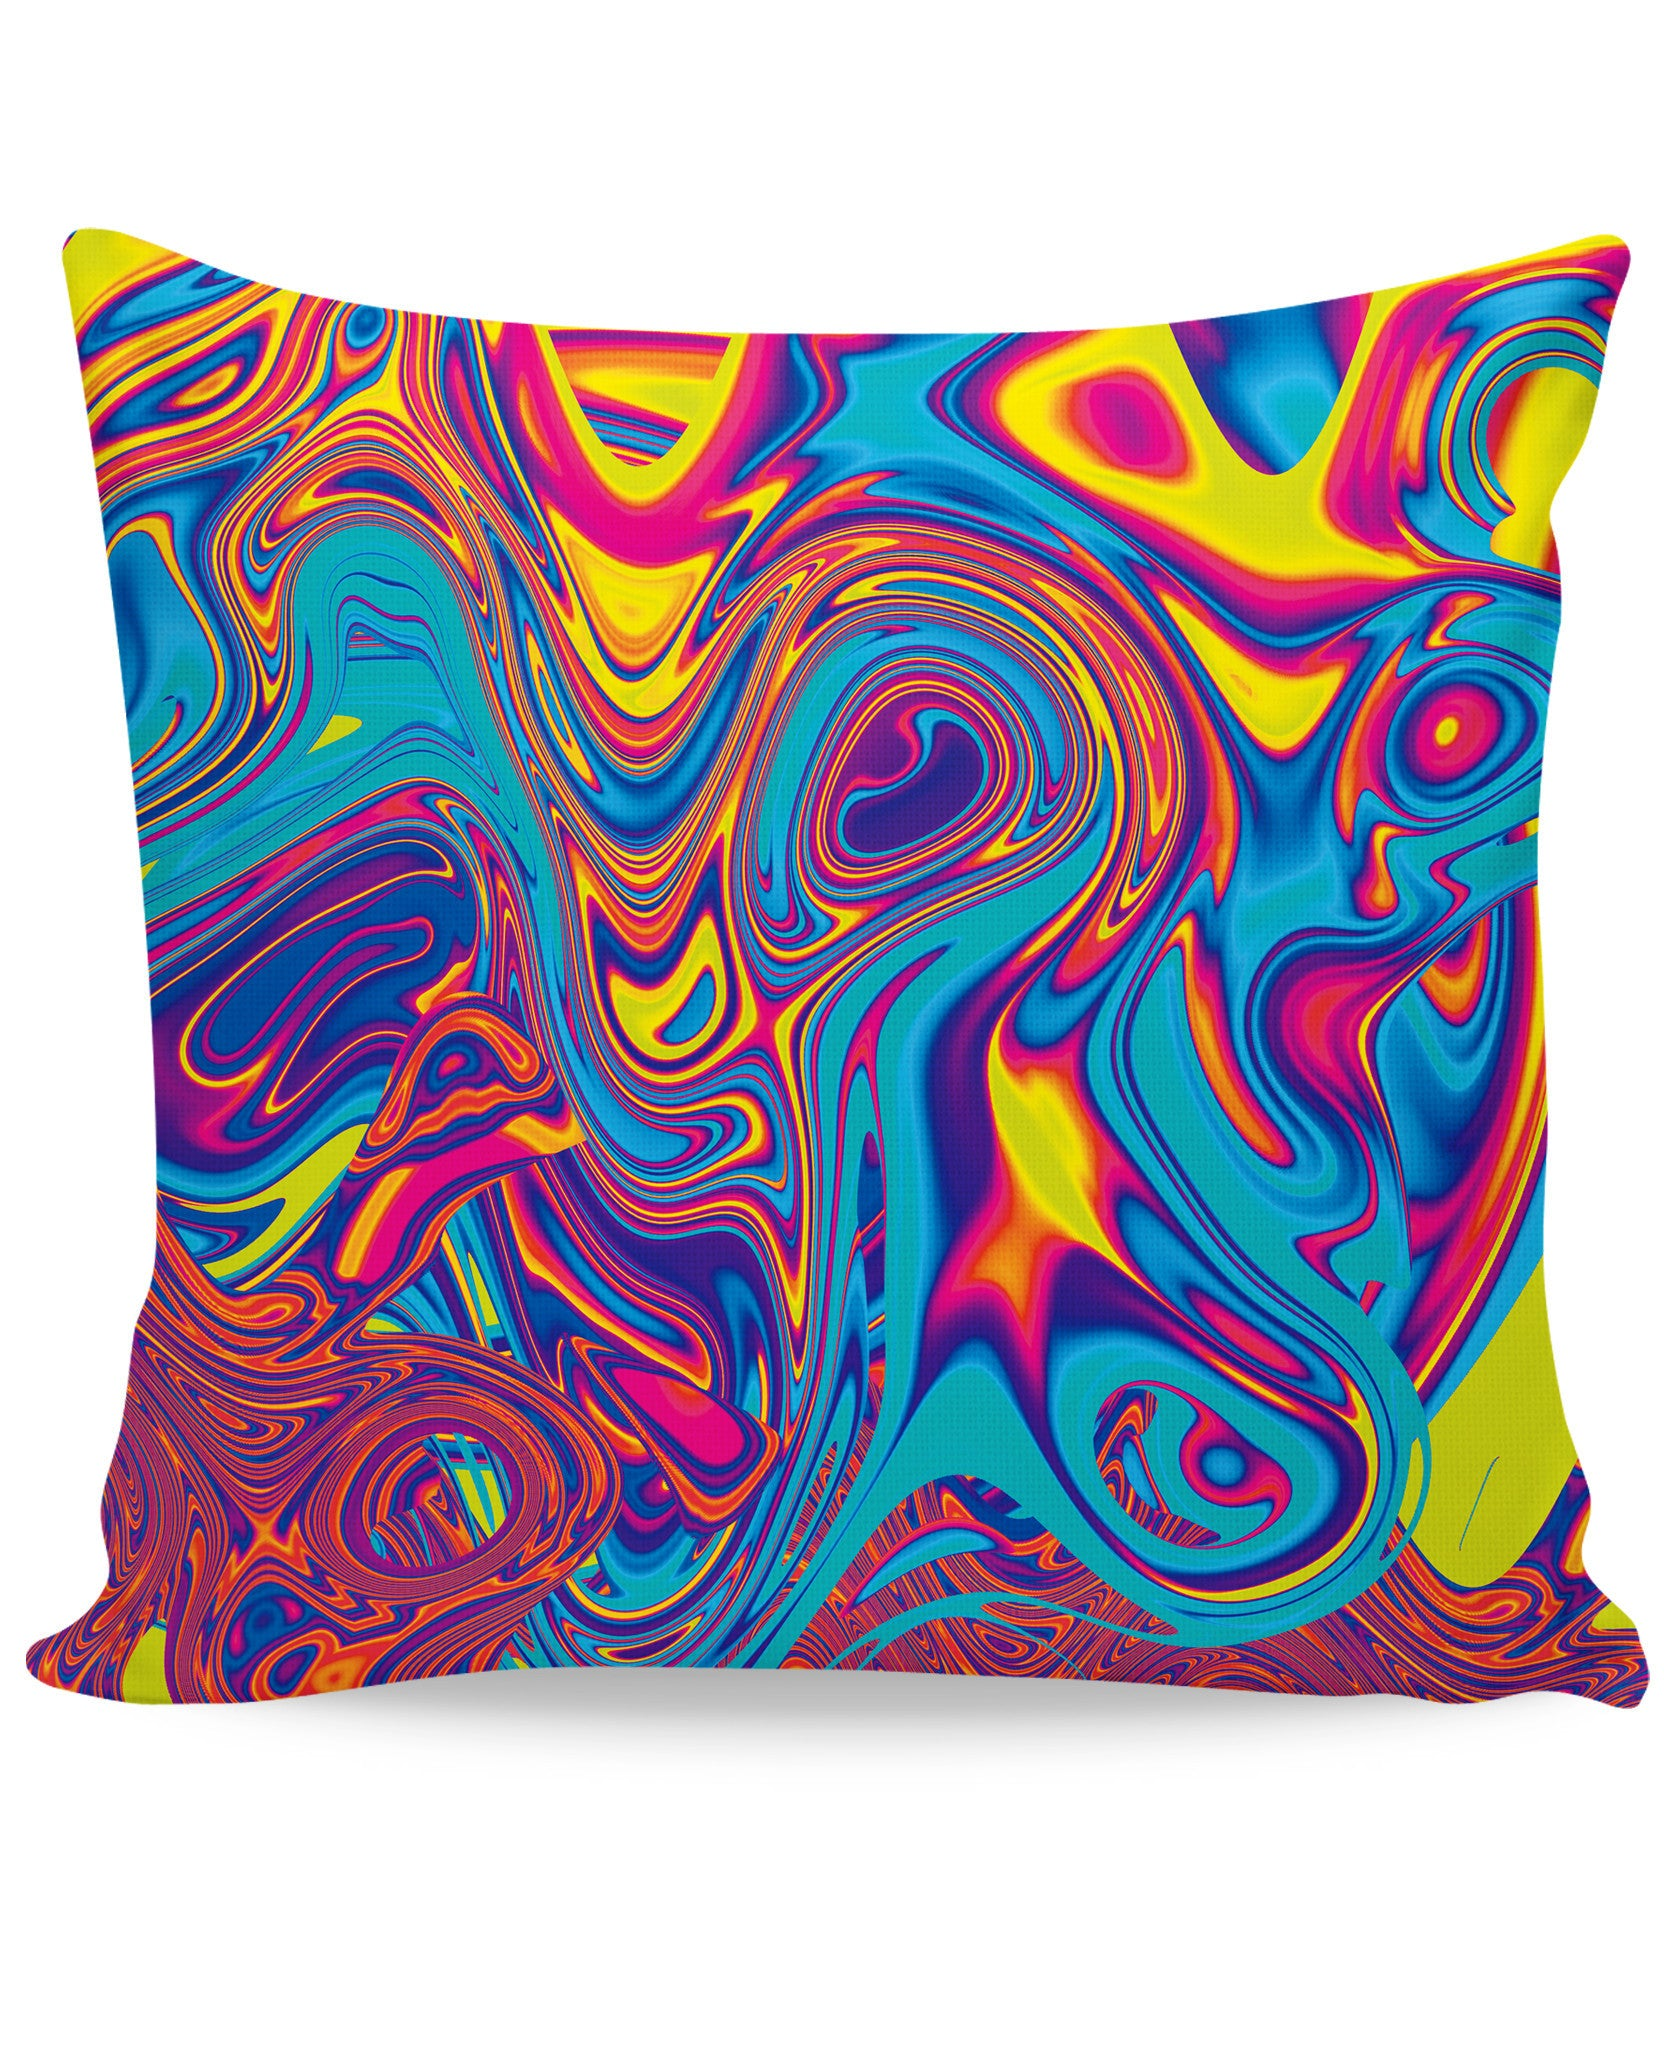 Oil Spill Couch Pillow